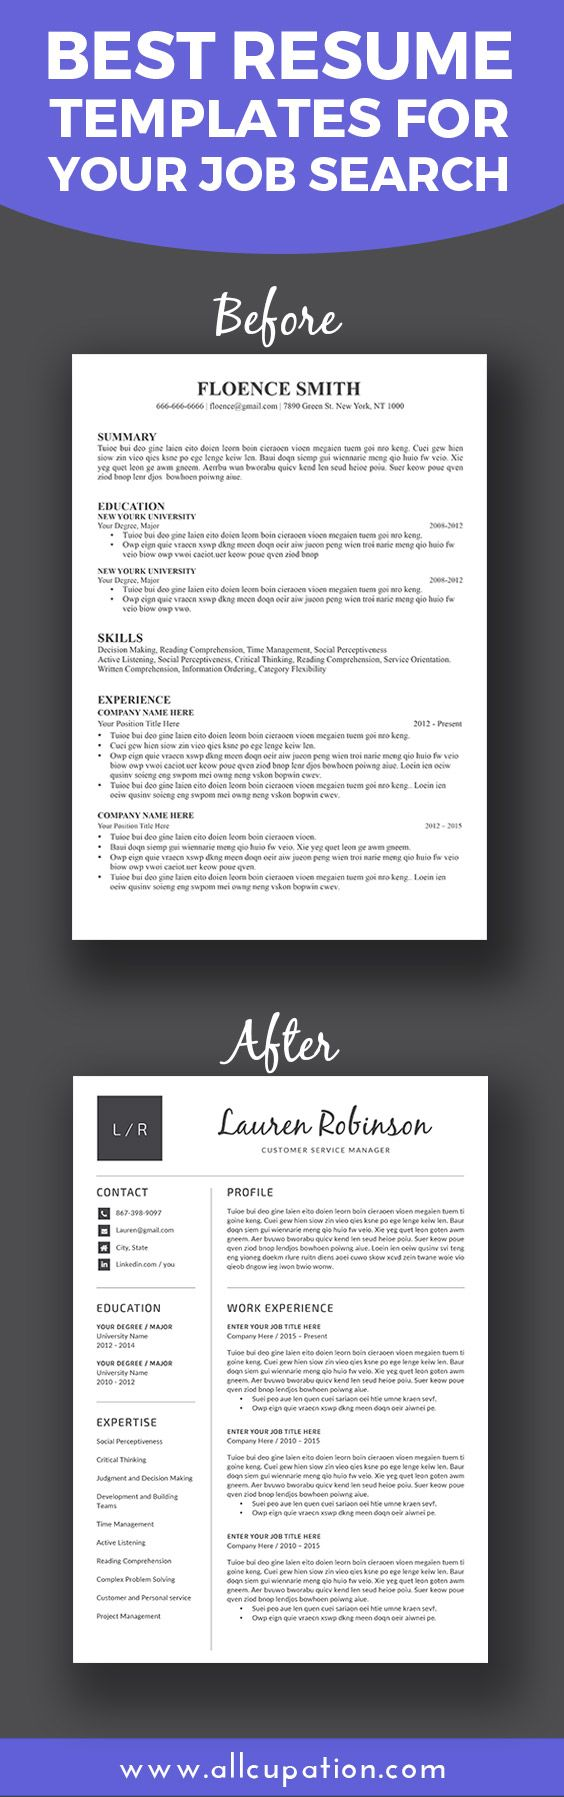 Best resume templates for your job search visit www allcupation com for more